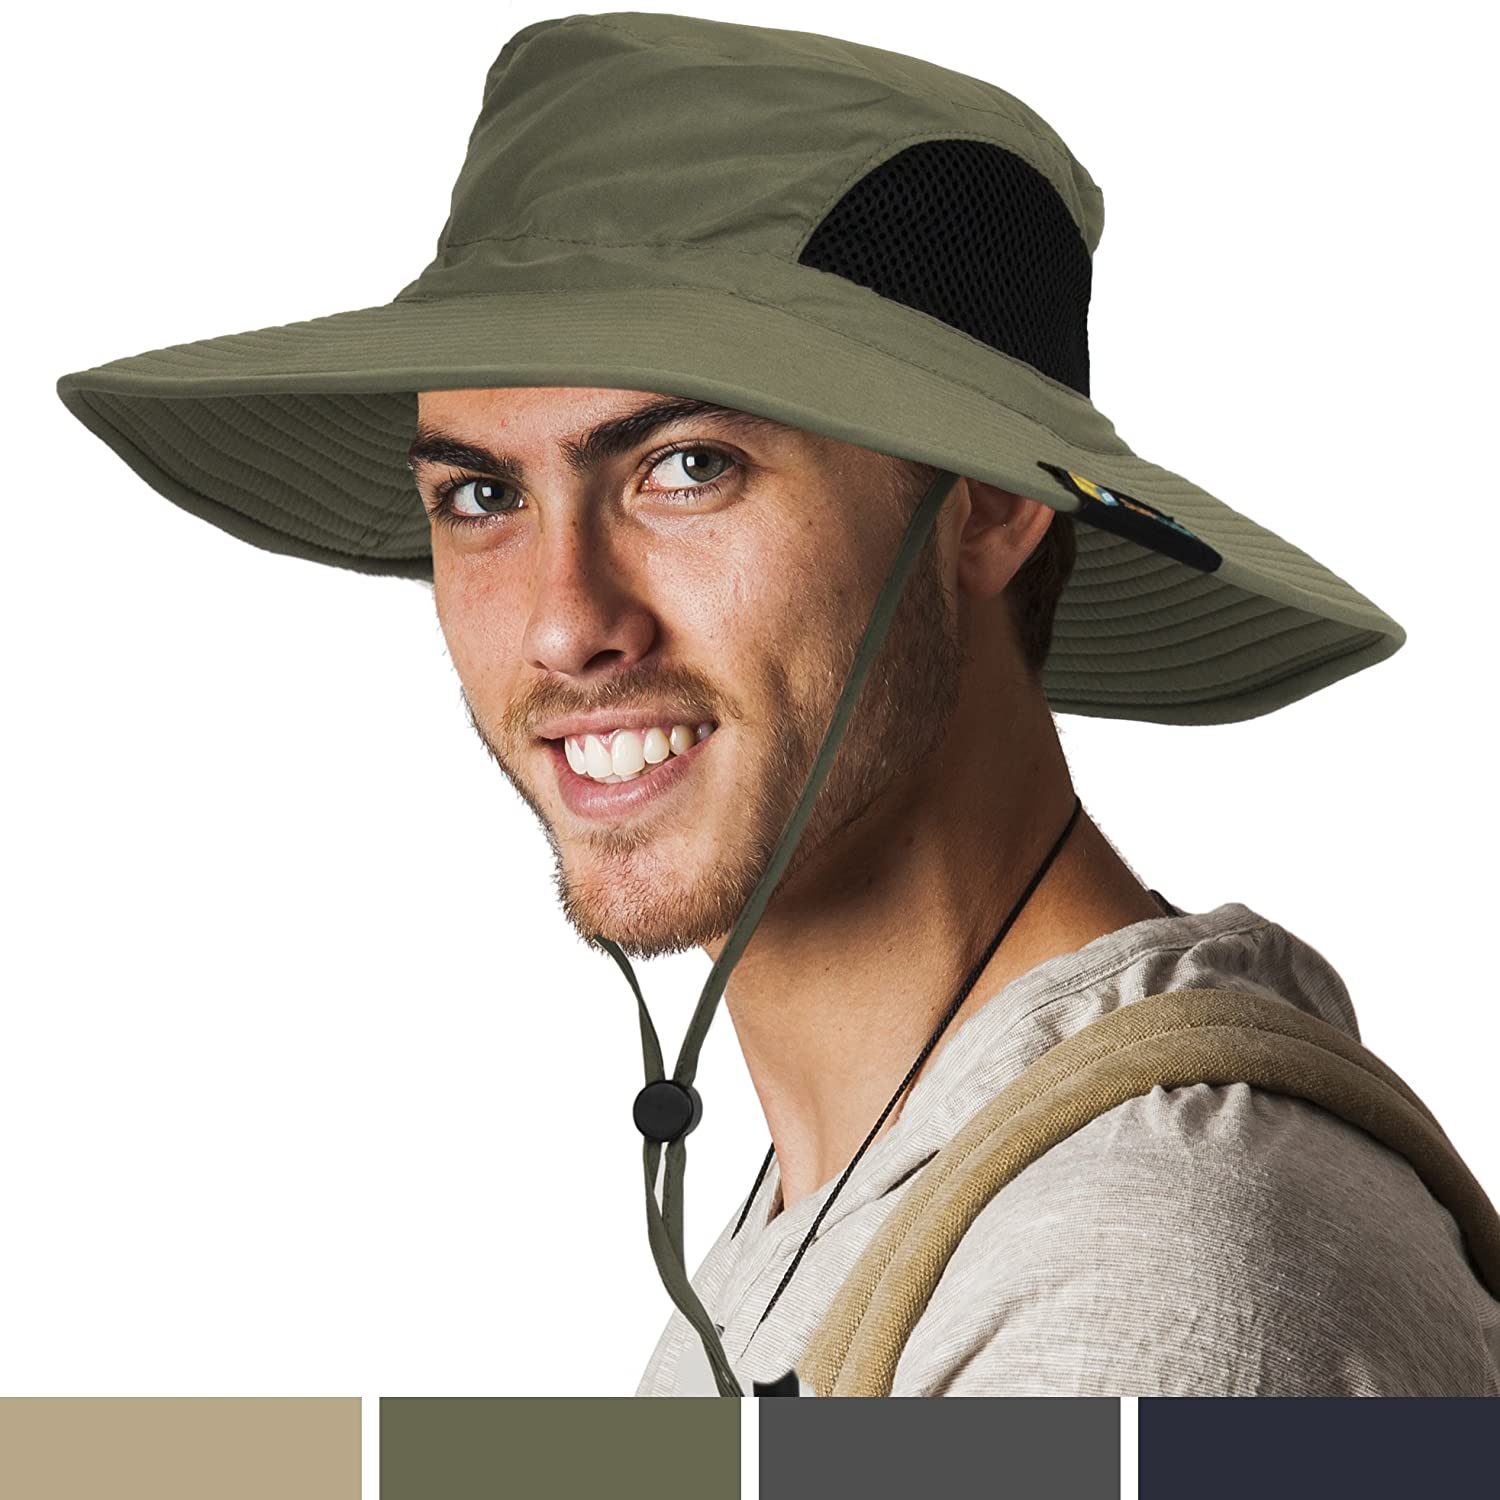 5a6f0880b Details about SUN CUBE Premium Boonie Hat with Wide Brim, Adjustable Chin  Strap | Outdoor...